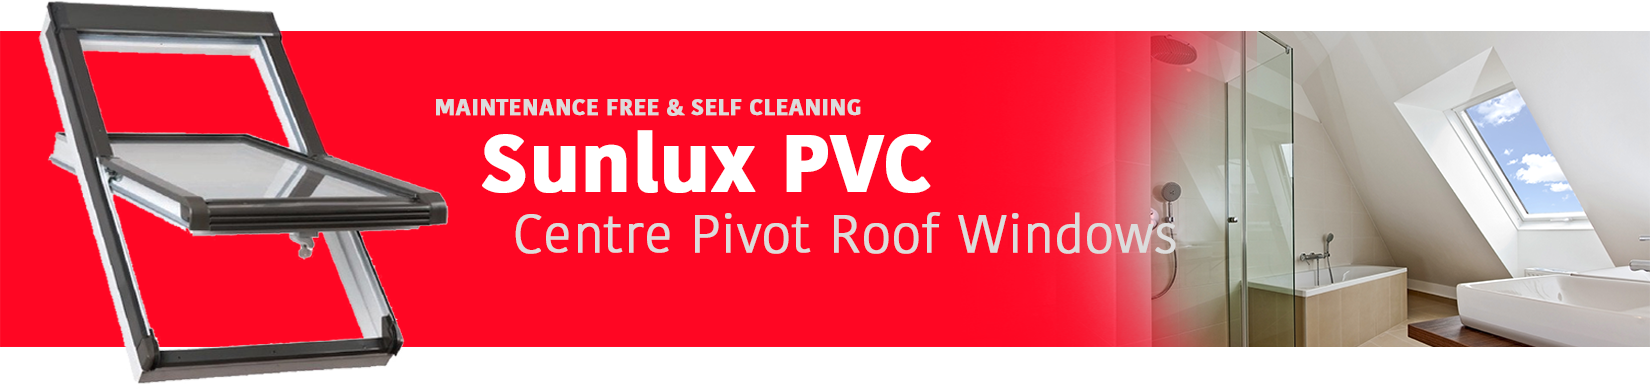 Sunlux center pivot PVC roof windows